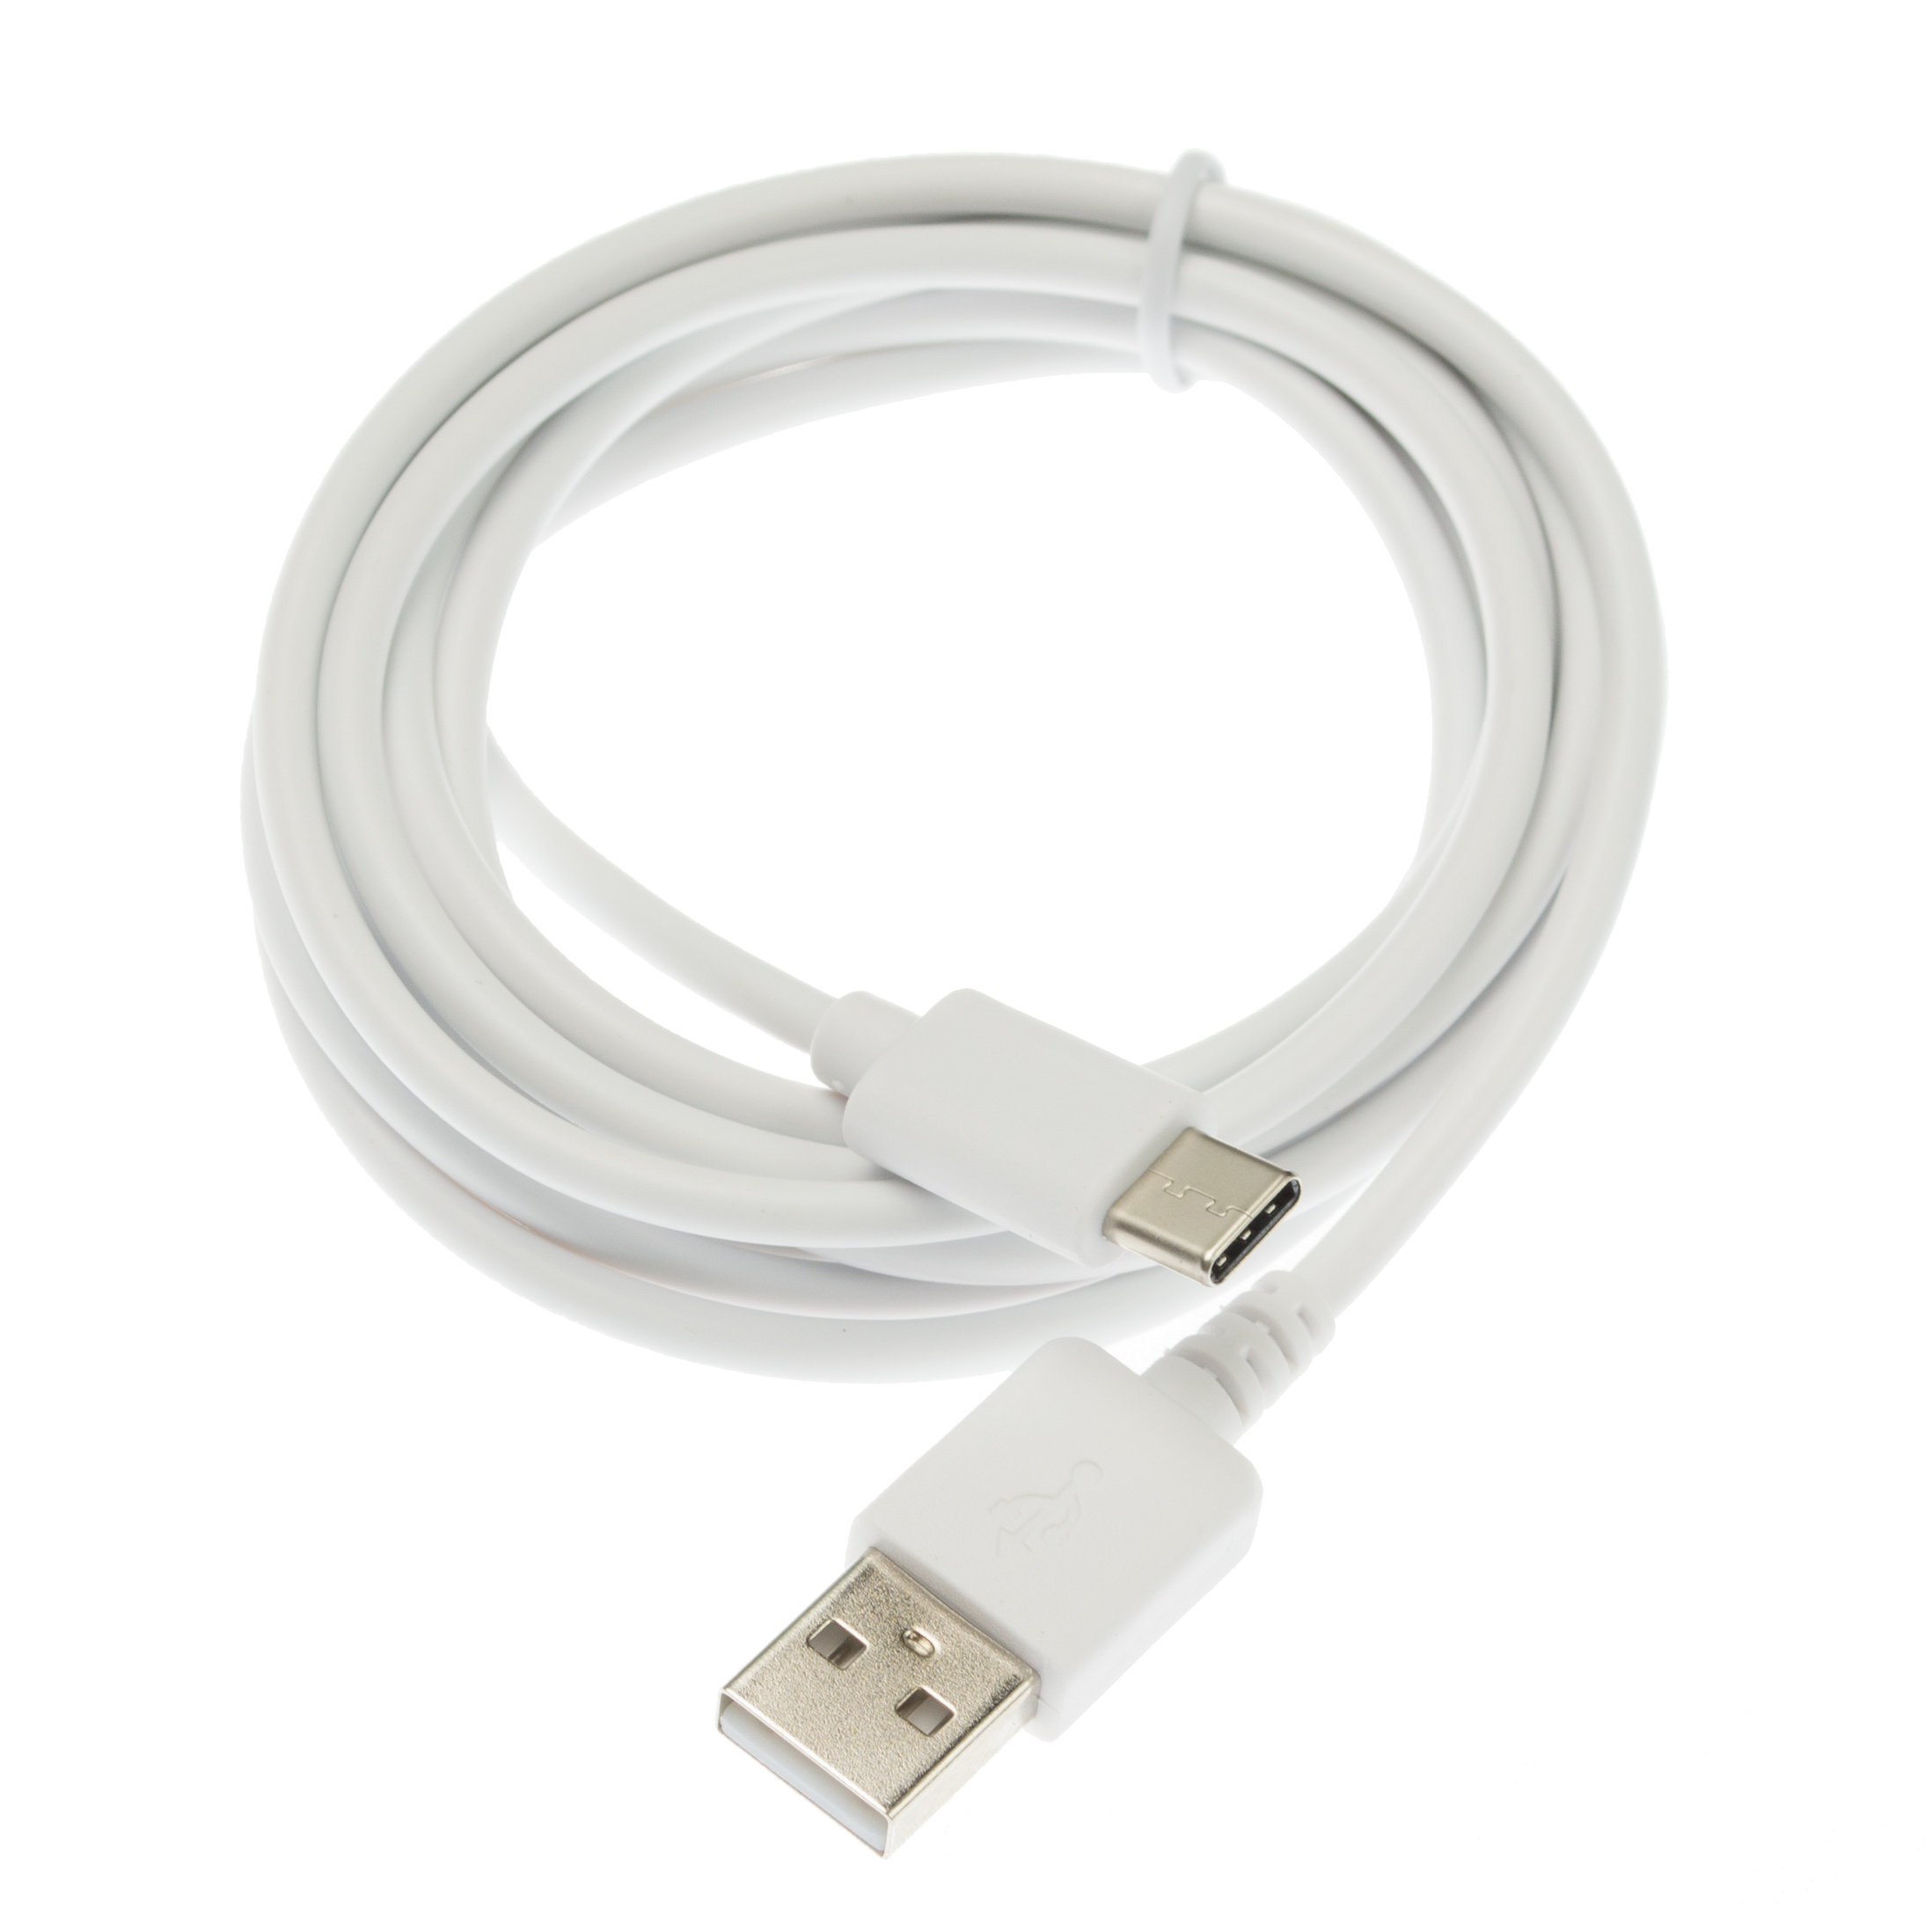 thumbnail 15 - USB Cable Compatible with Samsung Galaxy Tab S6 Lite SM-P610N, SM-P615 Tablet